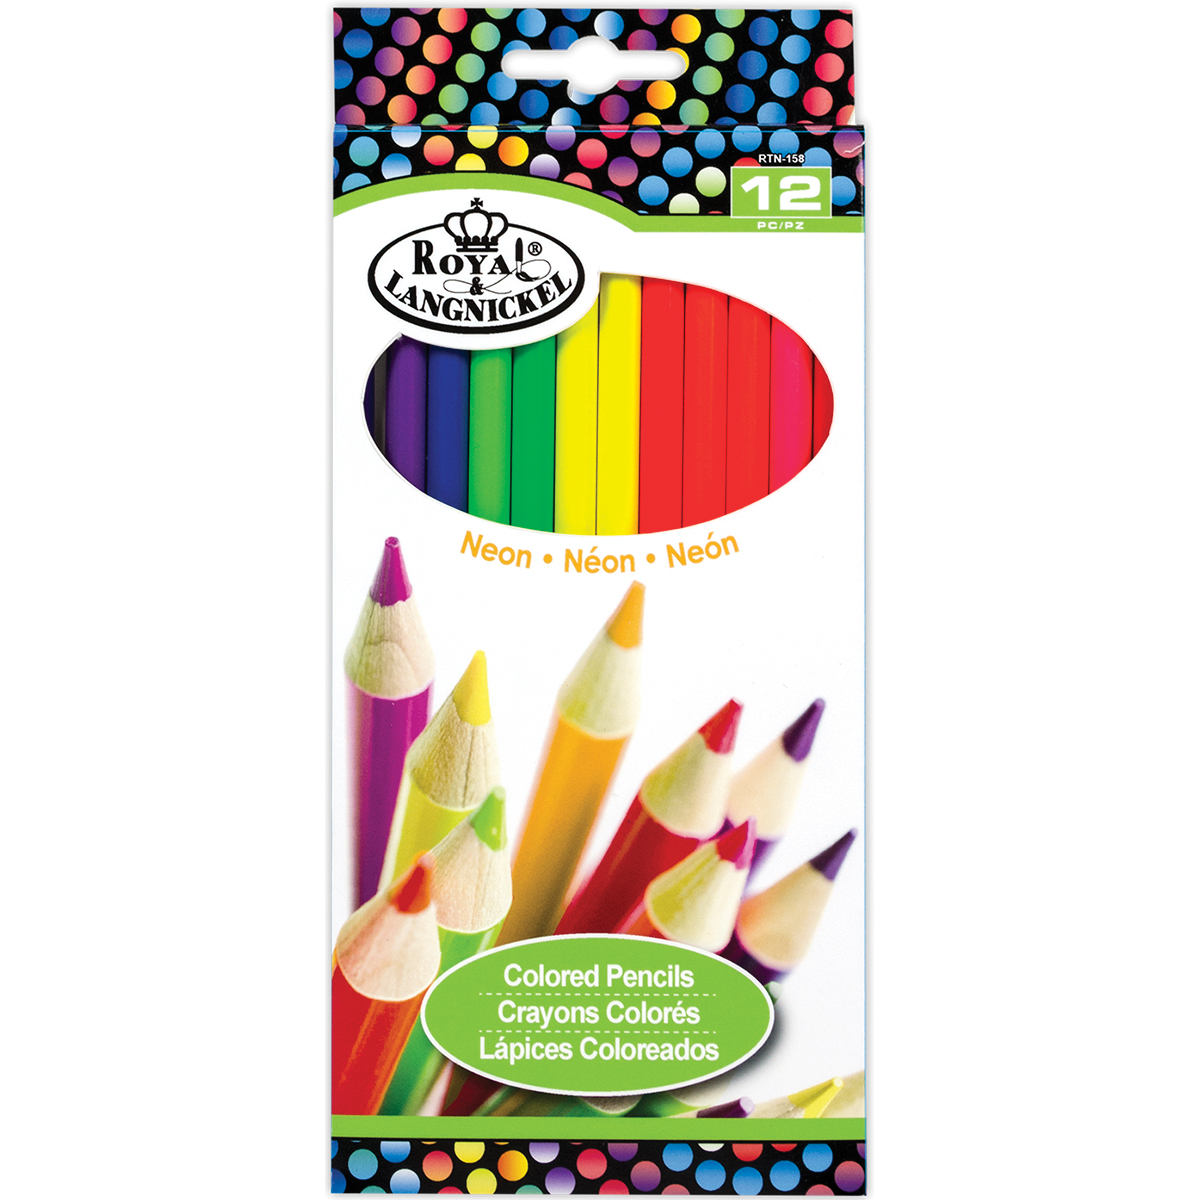 Neon Colored Pencils, 12pk